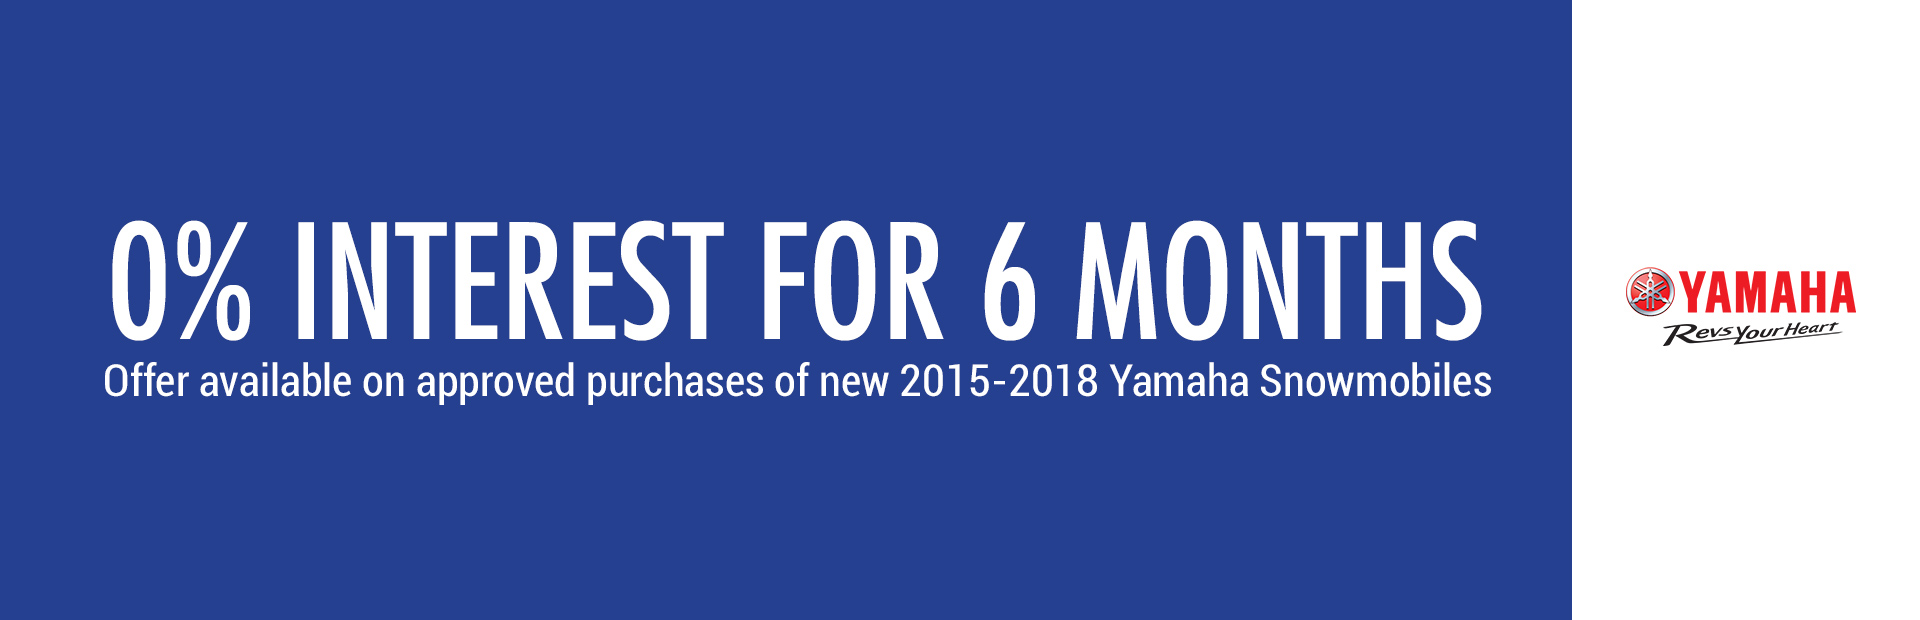 Yamaha: 0% Interest For 6 Months